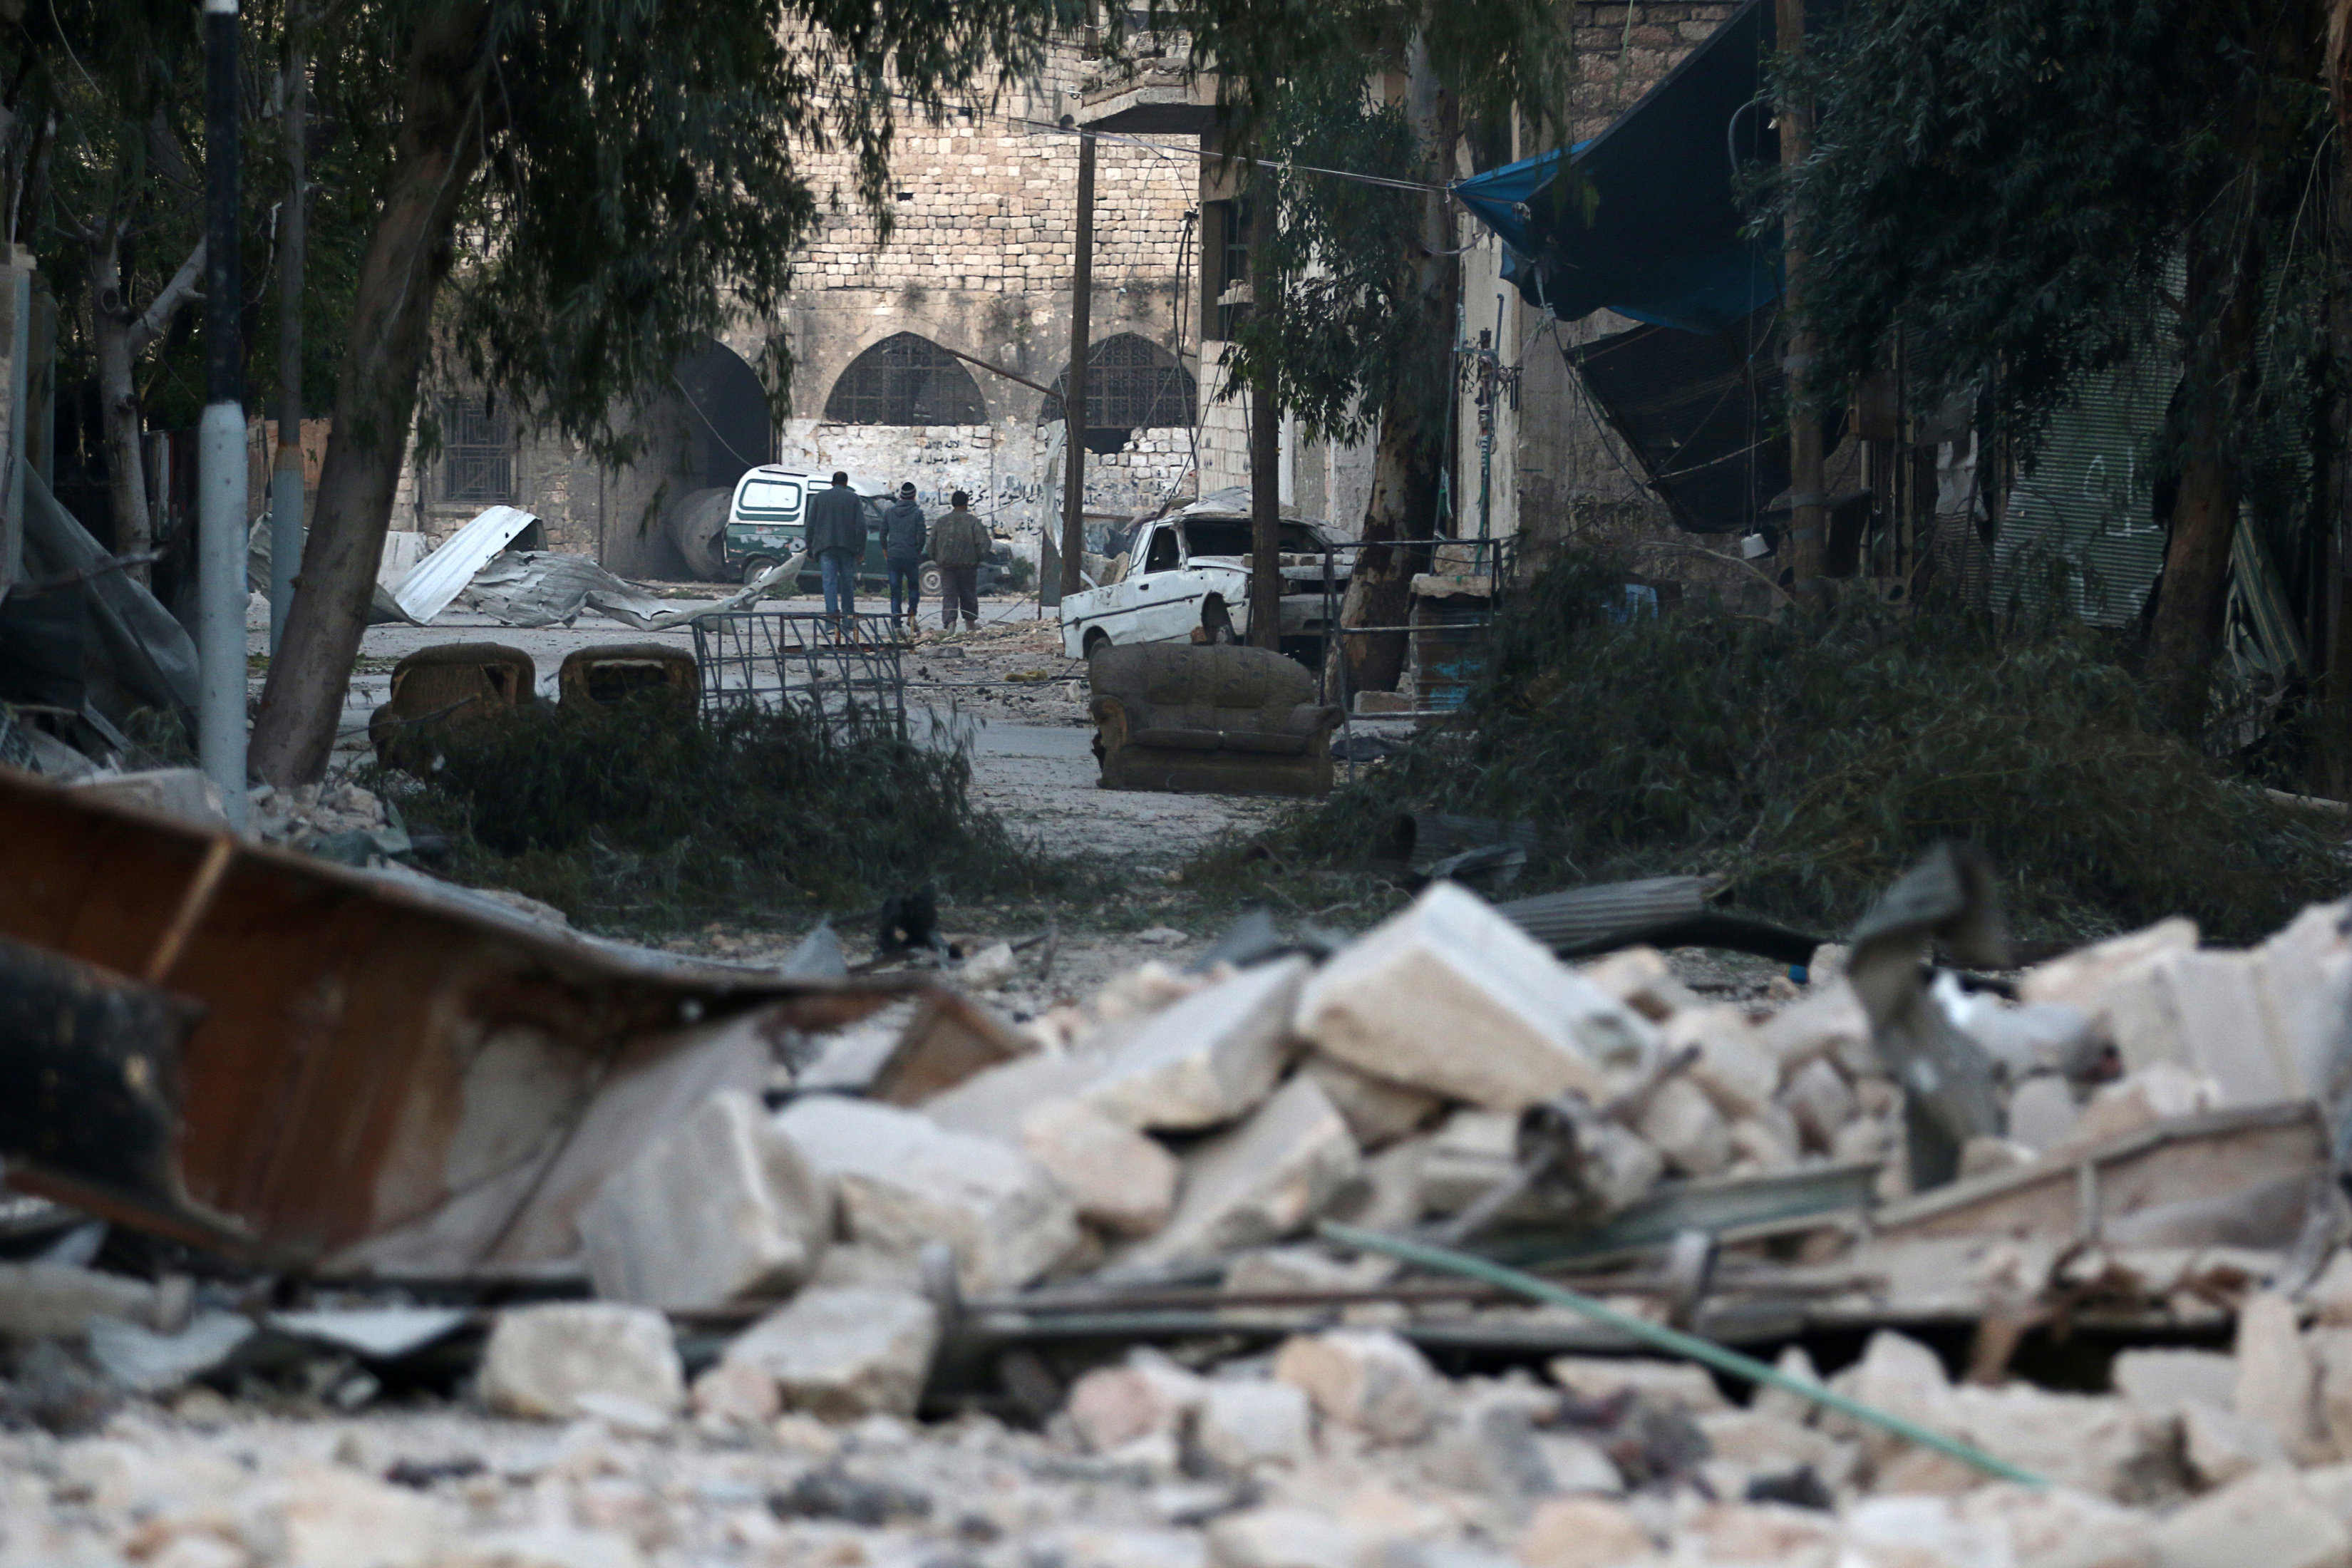 People walk near rubble of damaged buildings, in the rebel-held besieged area of Aleppo, Syria